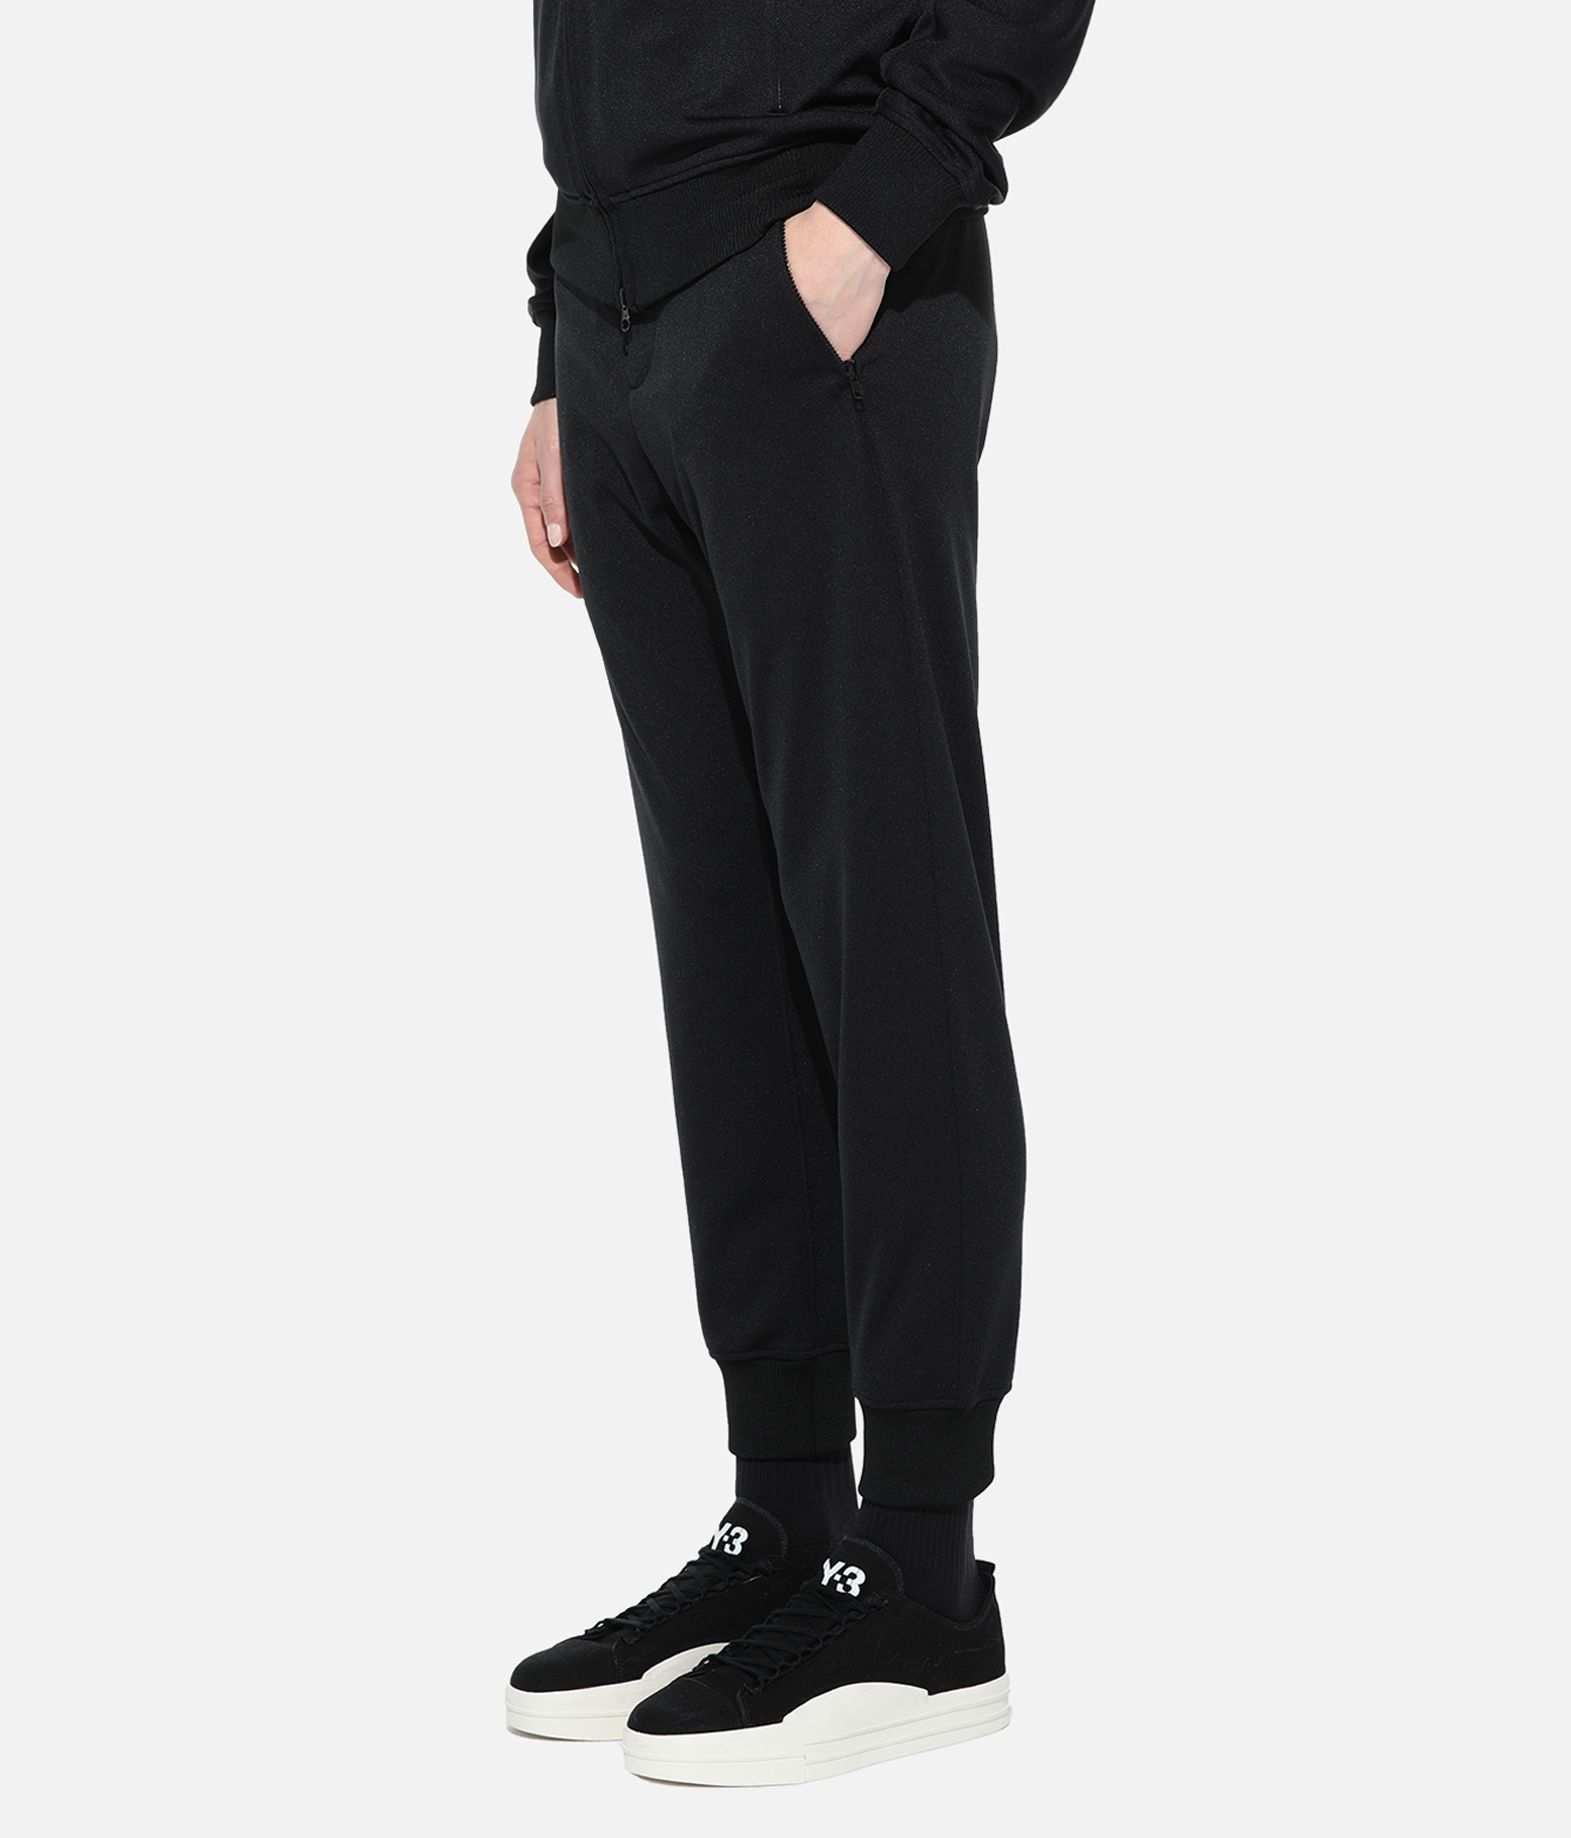 Y-3 Y-3 Classic Track Pants Track pant Woman e